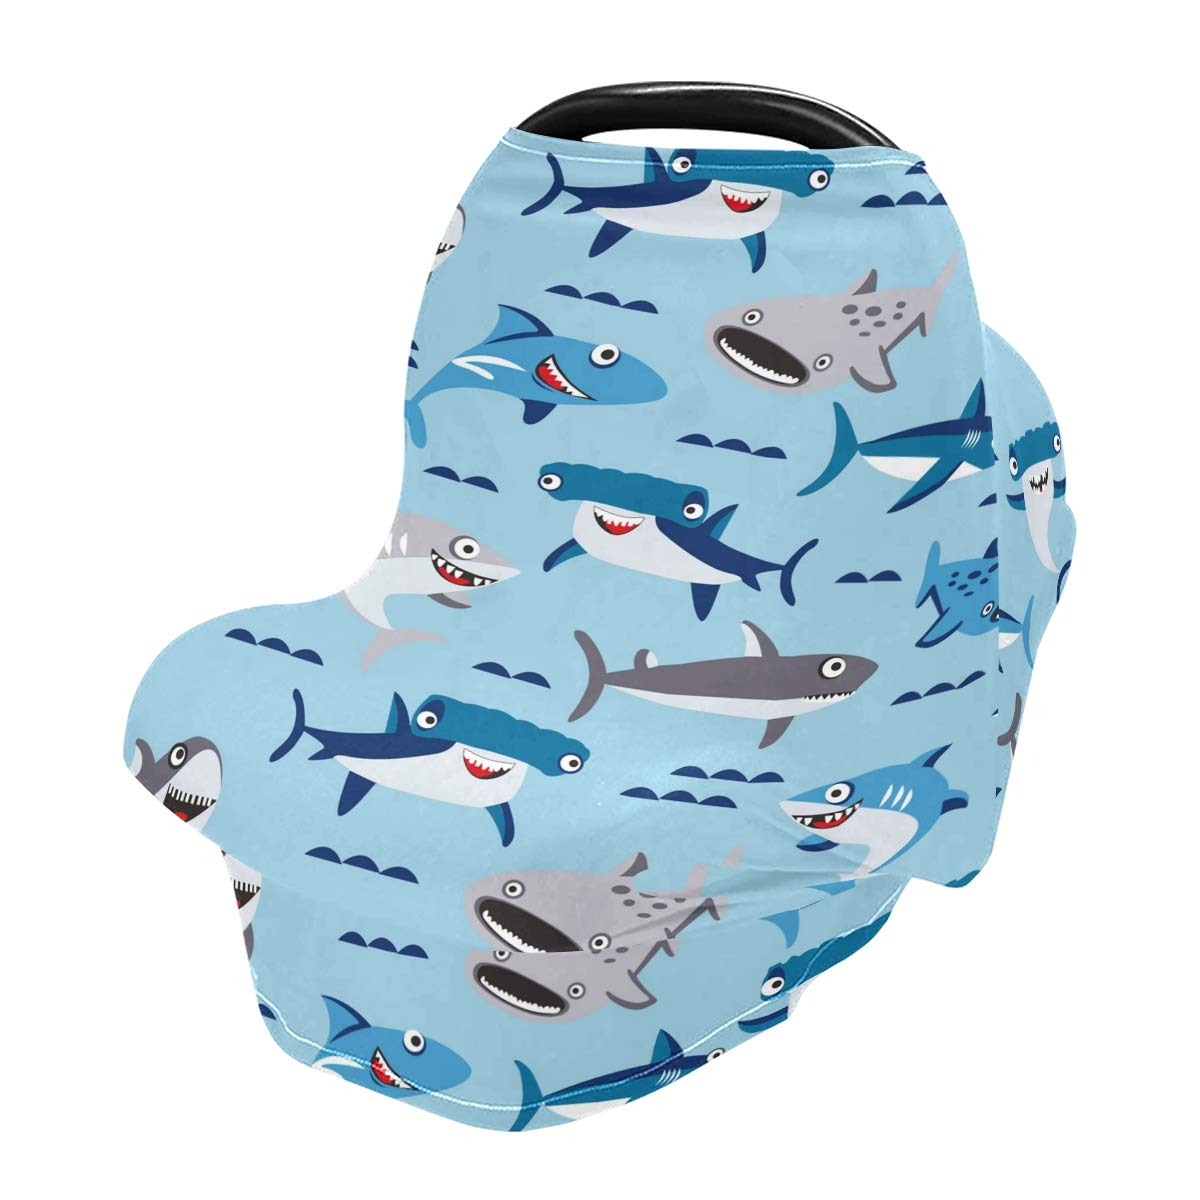 Nursing Cover Breastfeeding Scarf Shark Water Blue - Baby Car Seat Covers, Infant Stroller Cover, Carseat Canopy for Girls and Boys(801i)